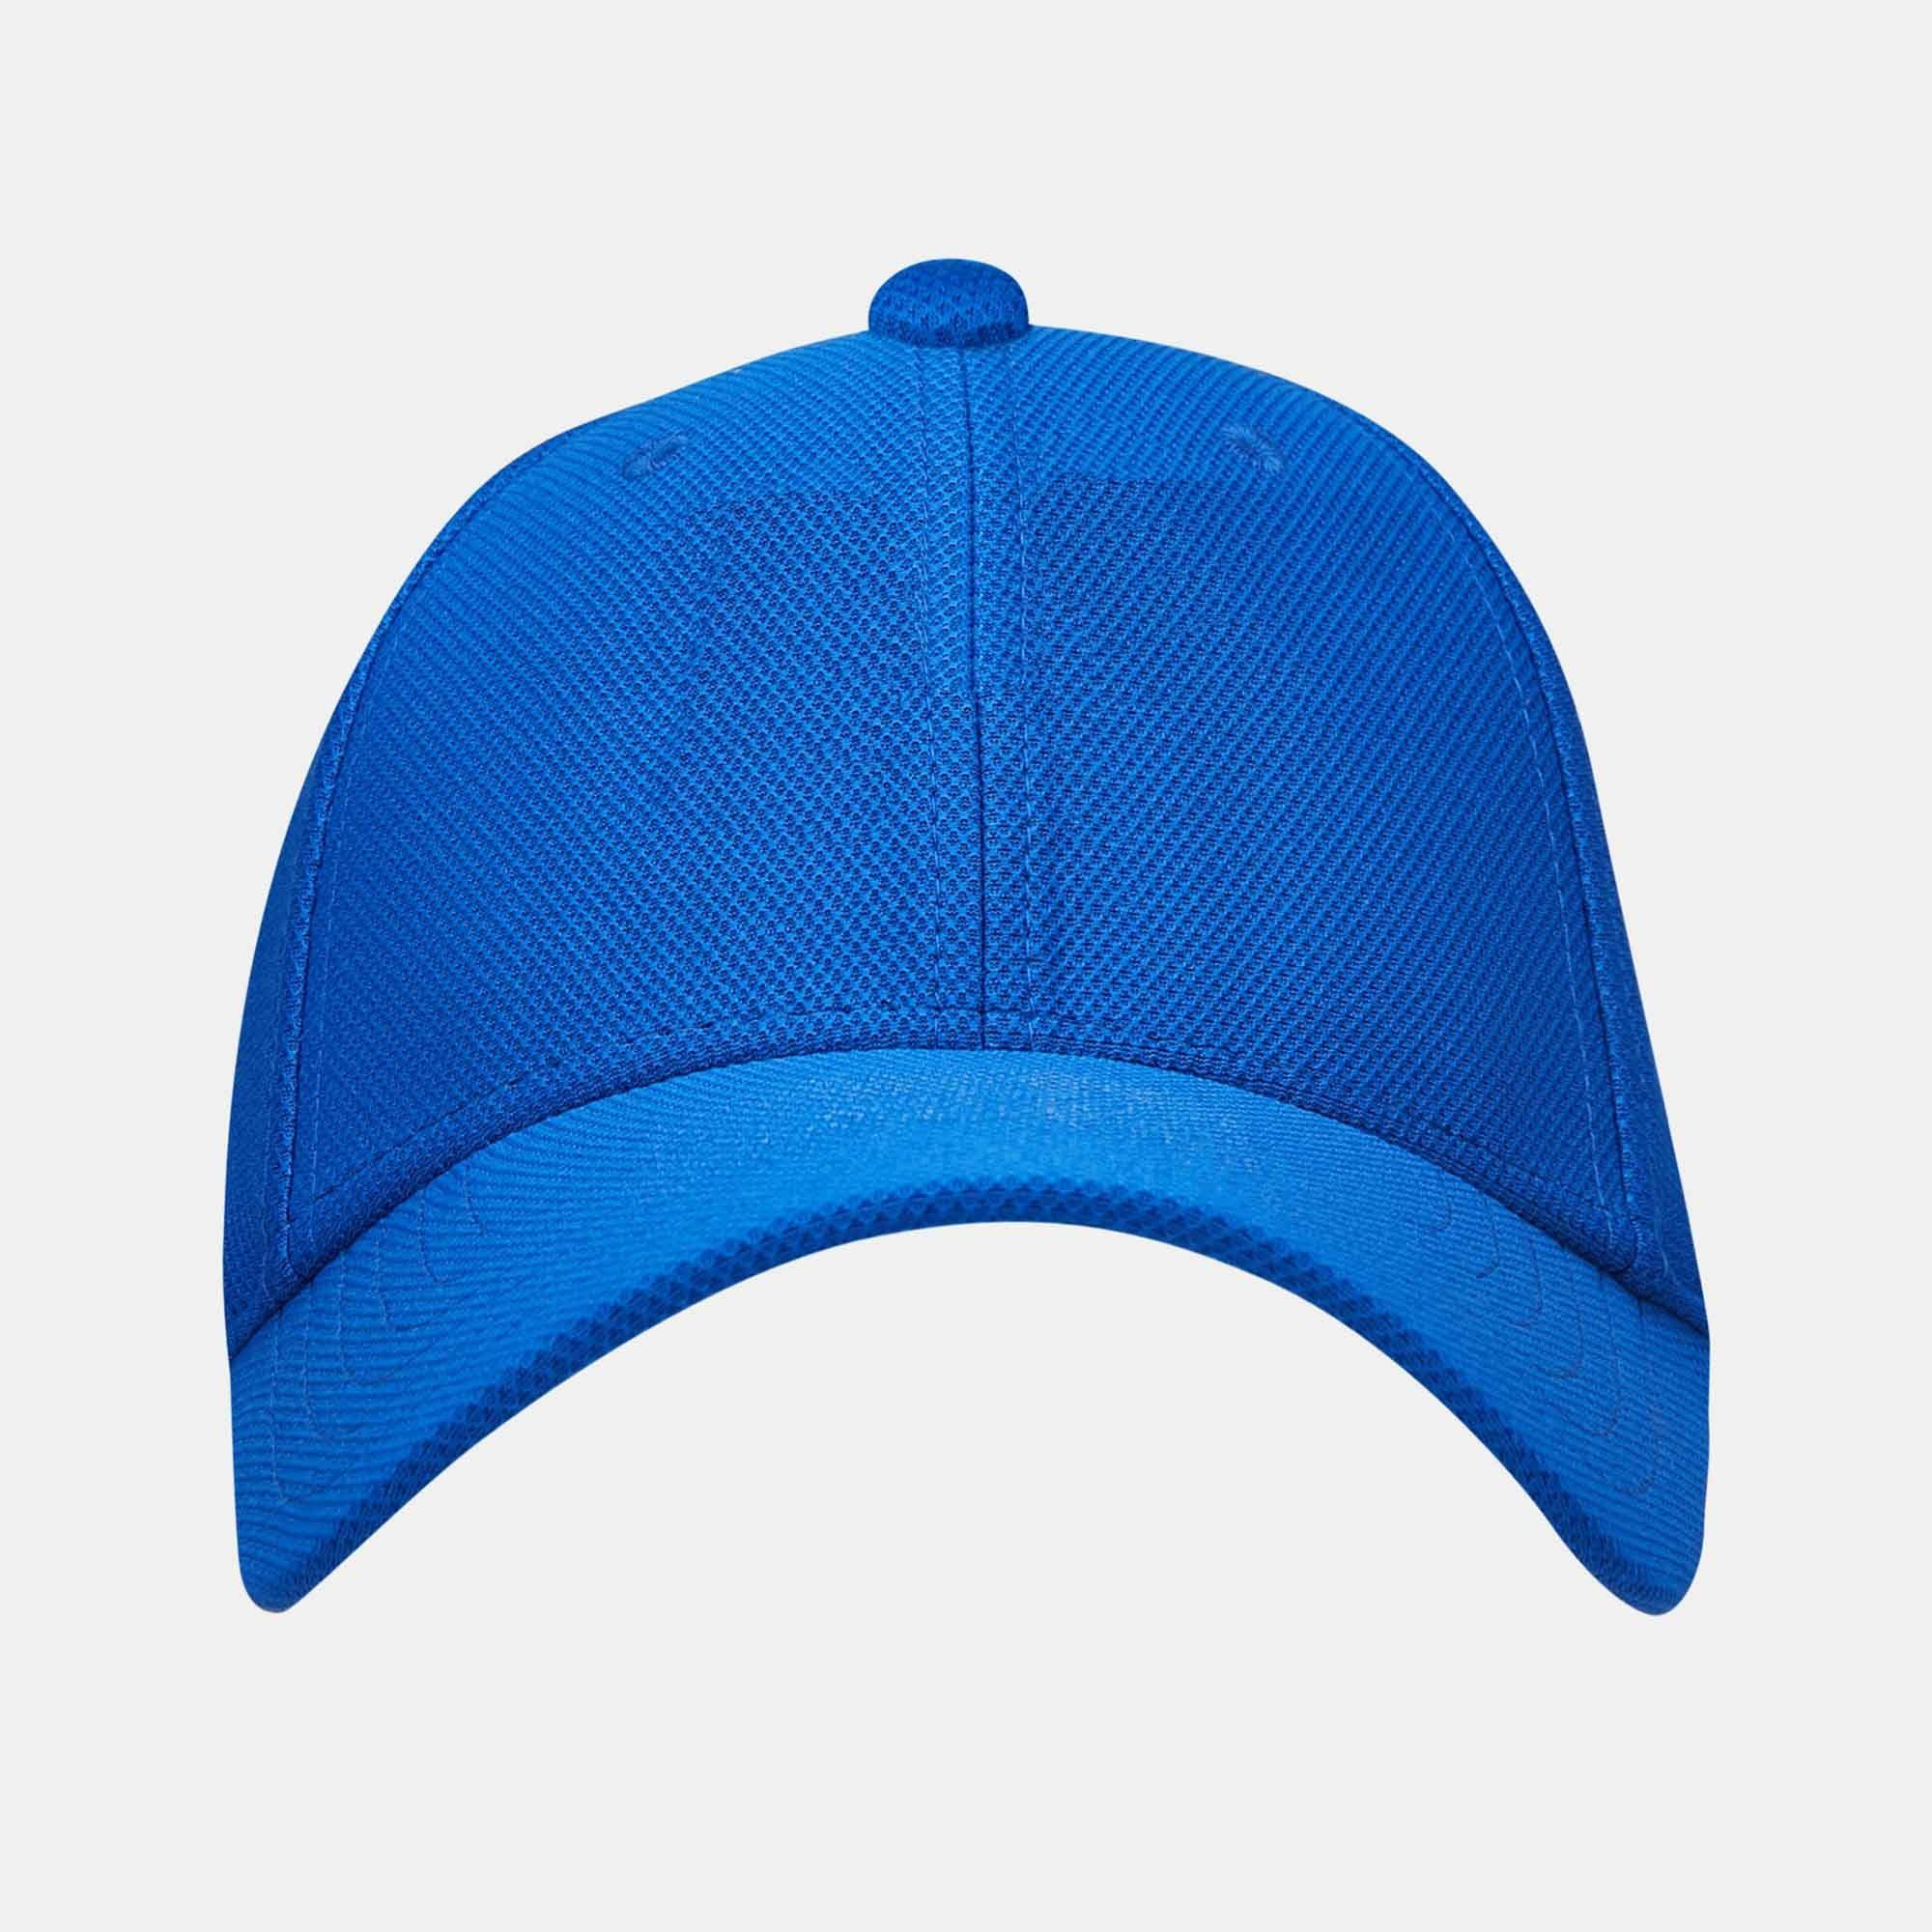 Customized Sports Cap Baseball Ball Best Quality New Style Unisex Sports Cap 100% Cotton Fabric